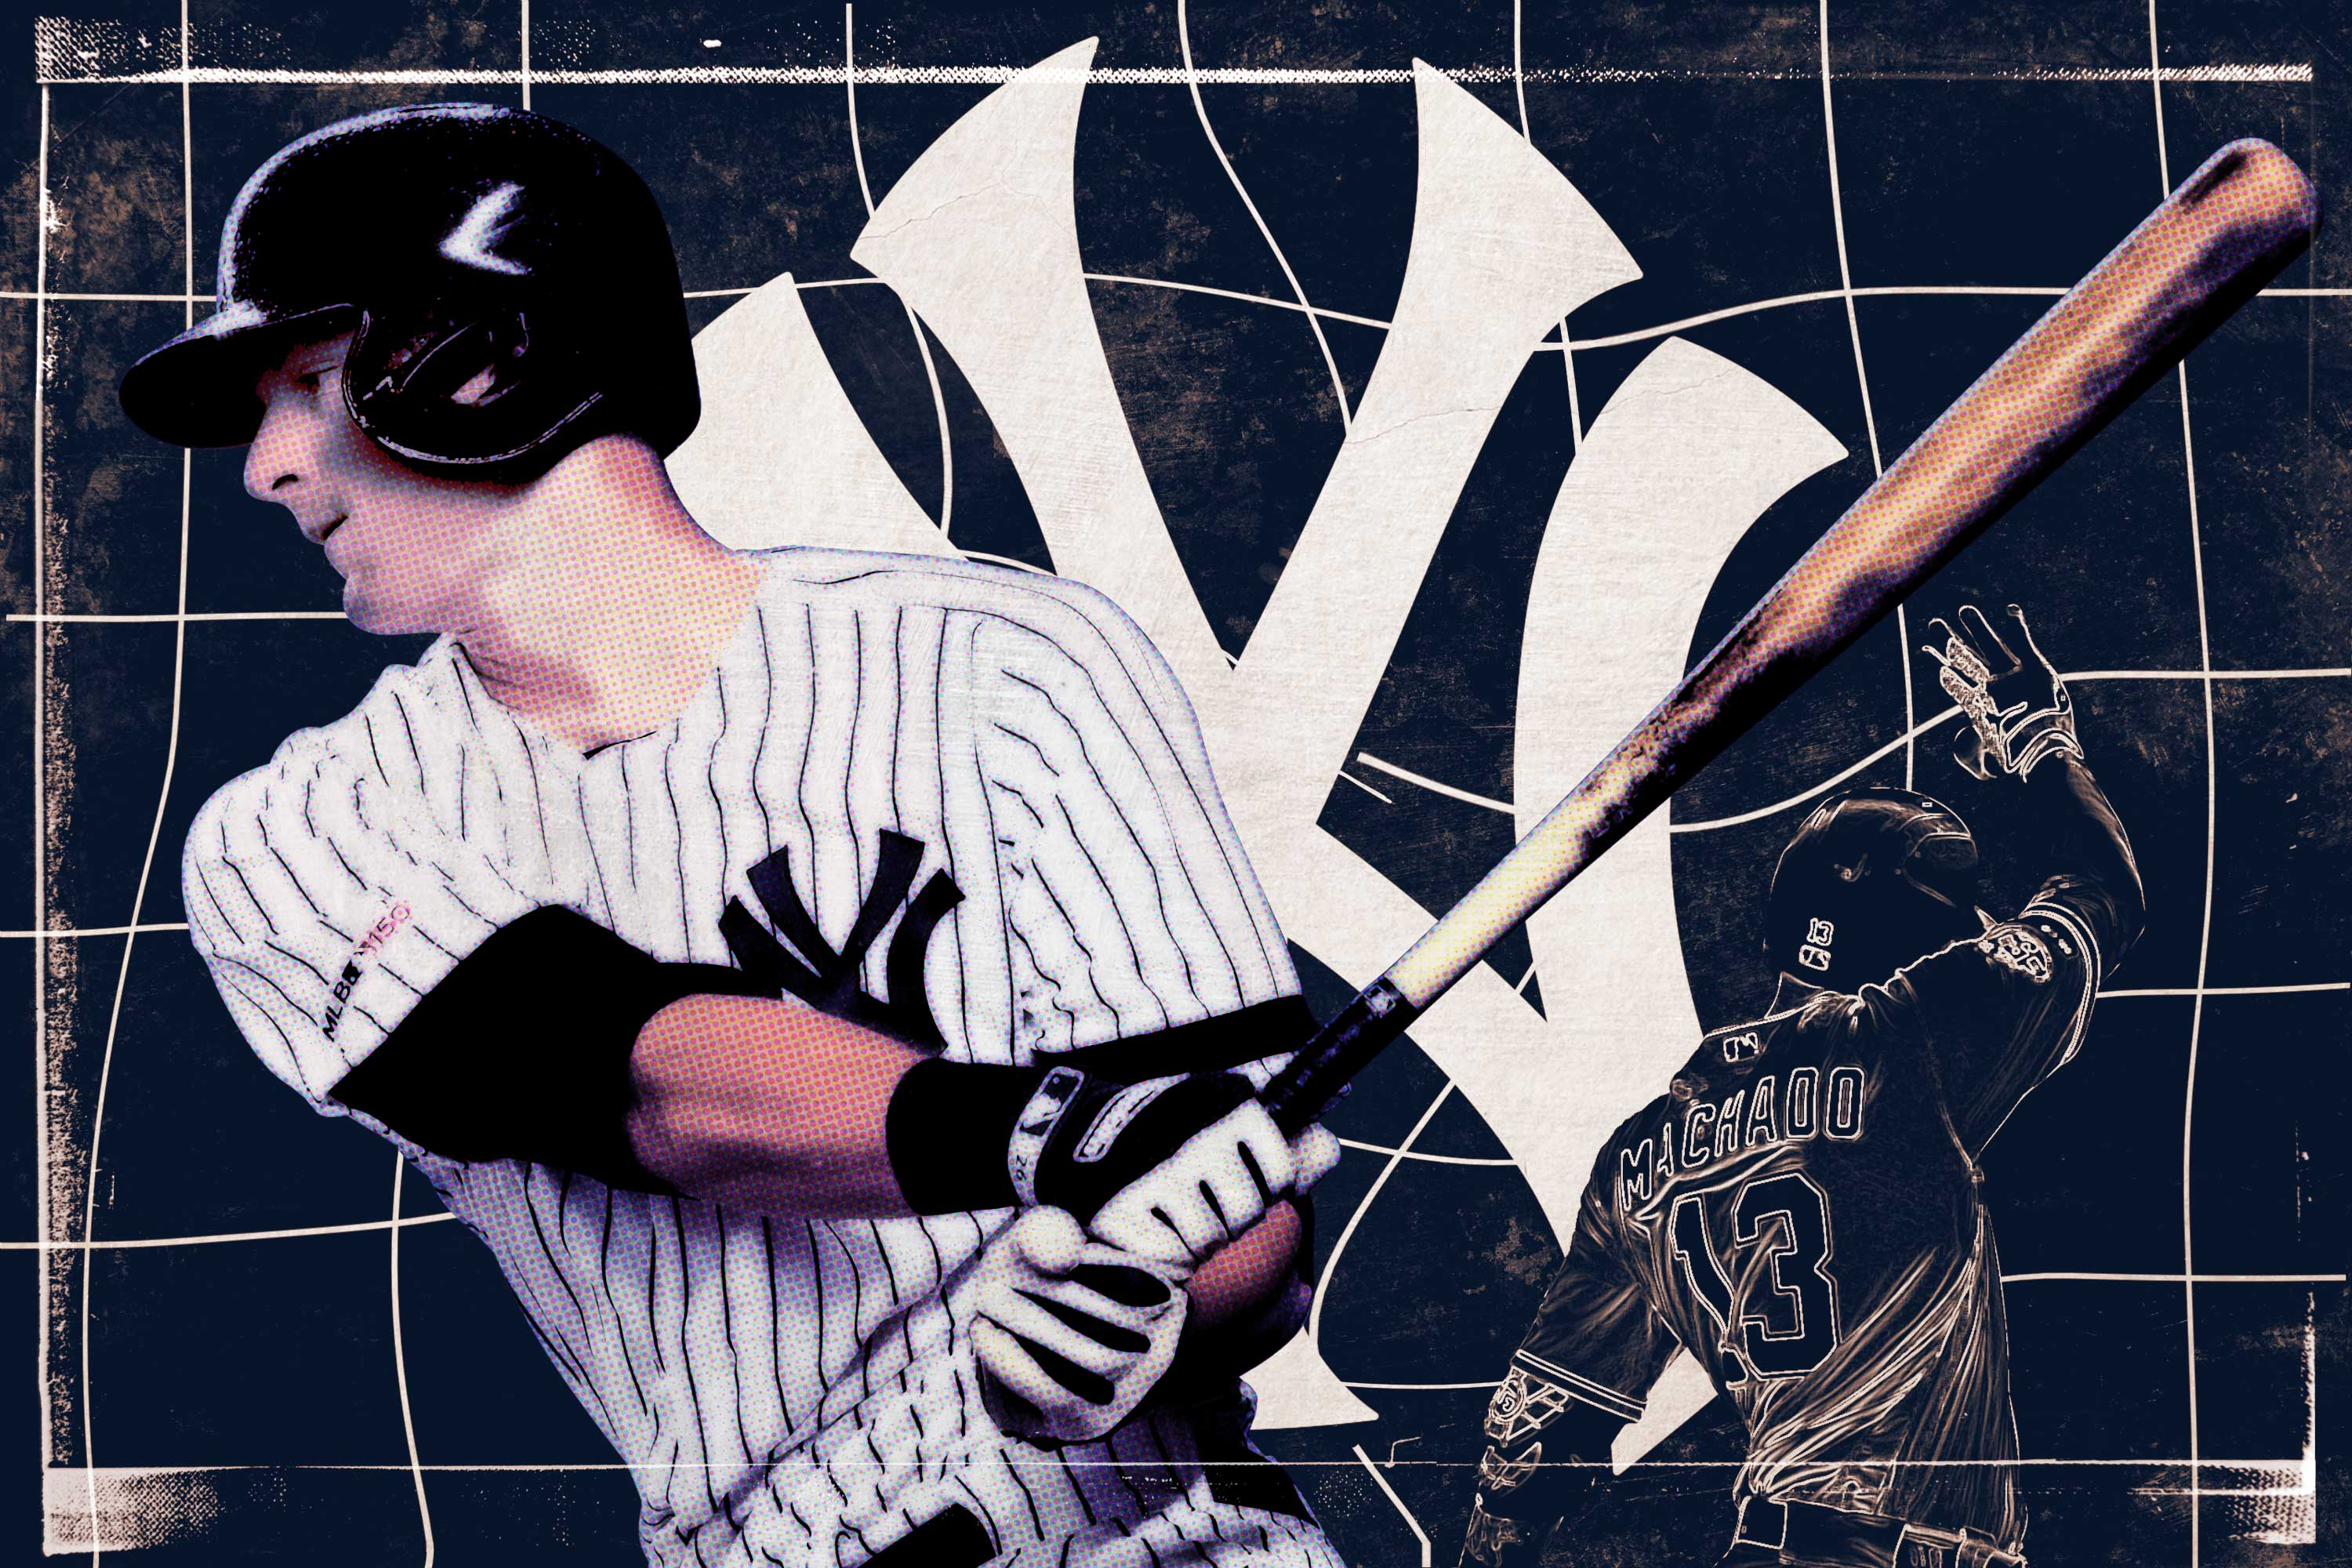 df90e44a How DJ LeMahieu—Yes, DJ LeMahieu—Became the Yankees' Surprise Savior